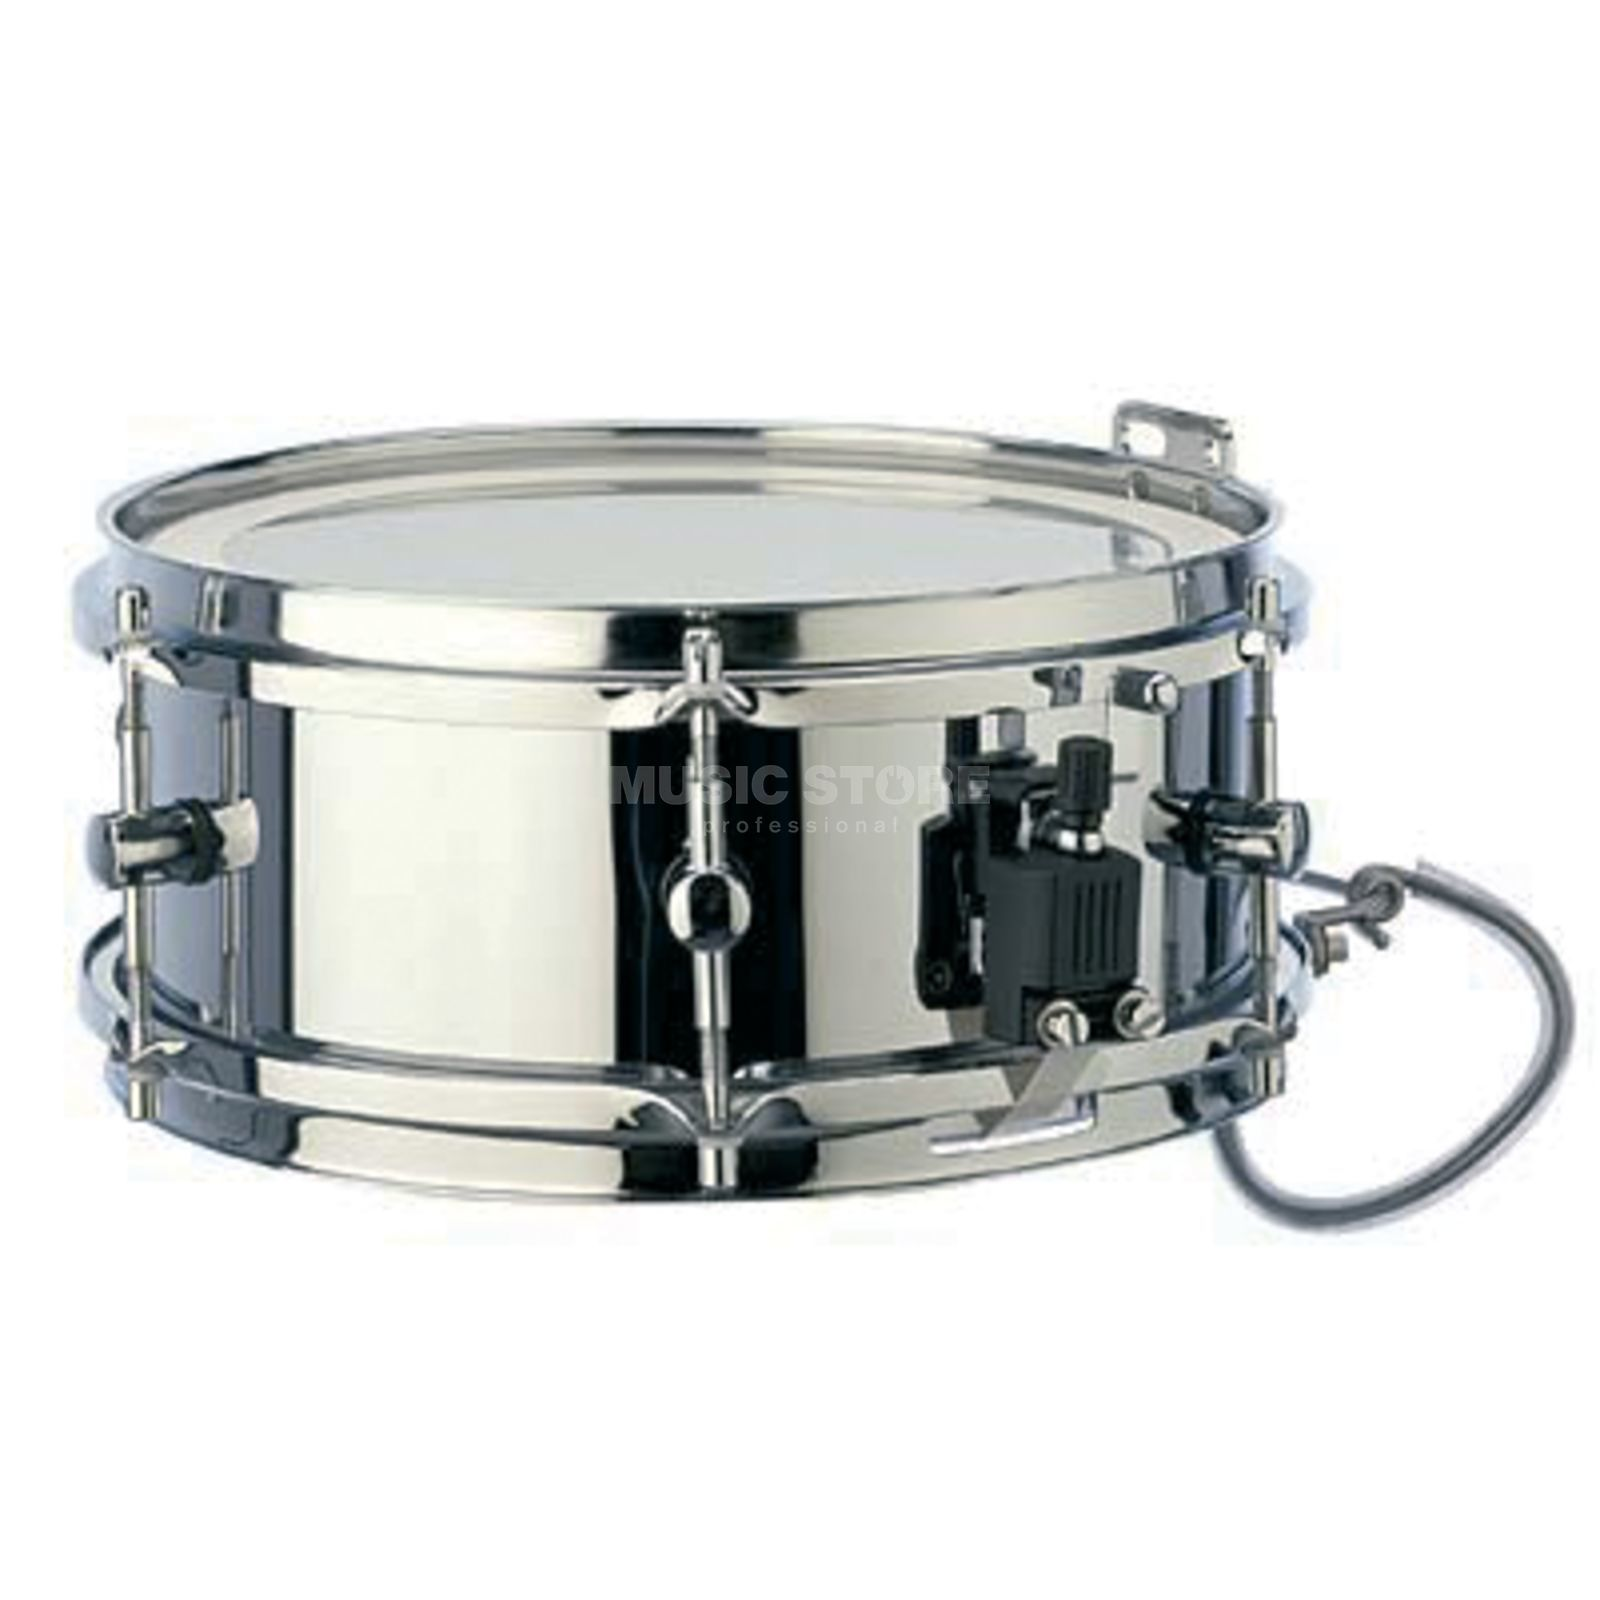 "Sonor Marching Snare MB205M, 12""x5"", B-Line Serie, Steel Produktbild"